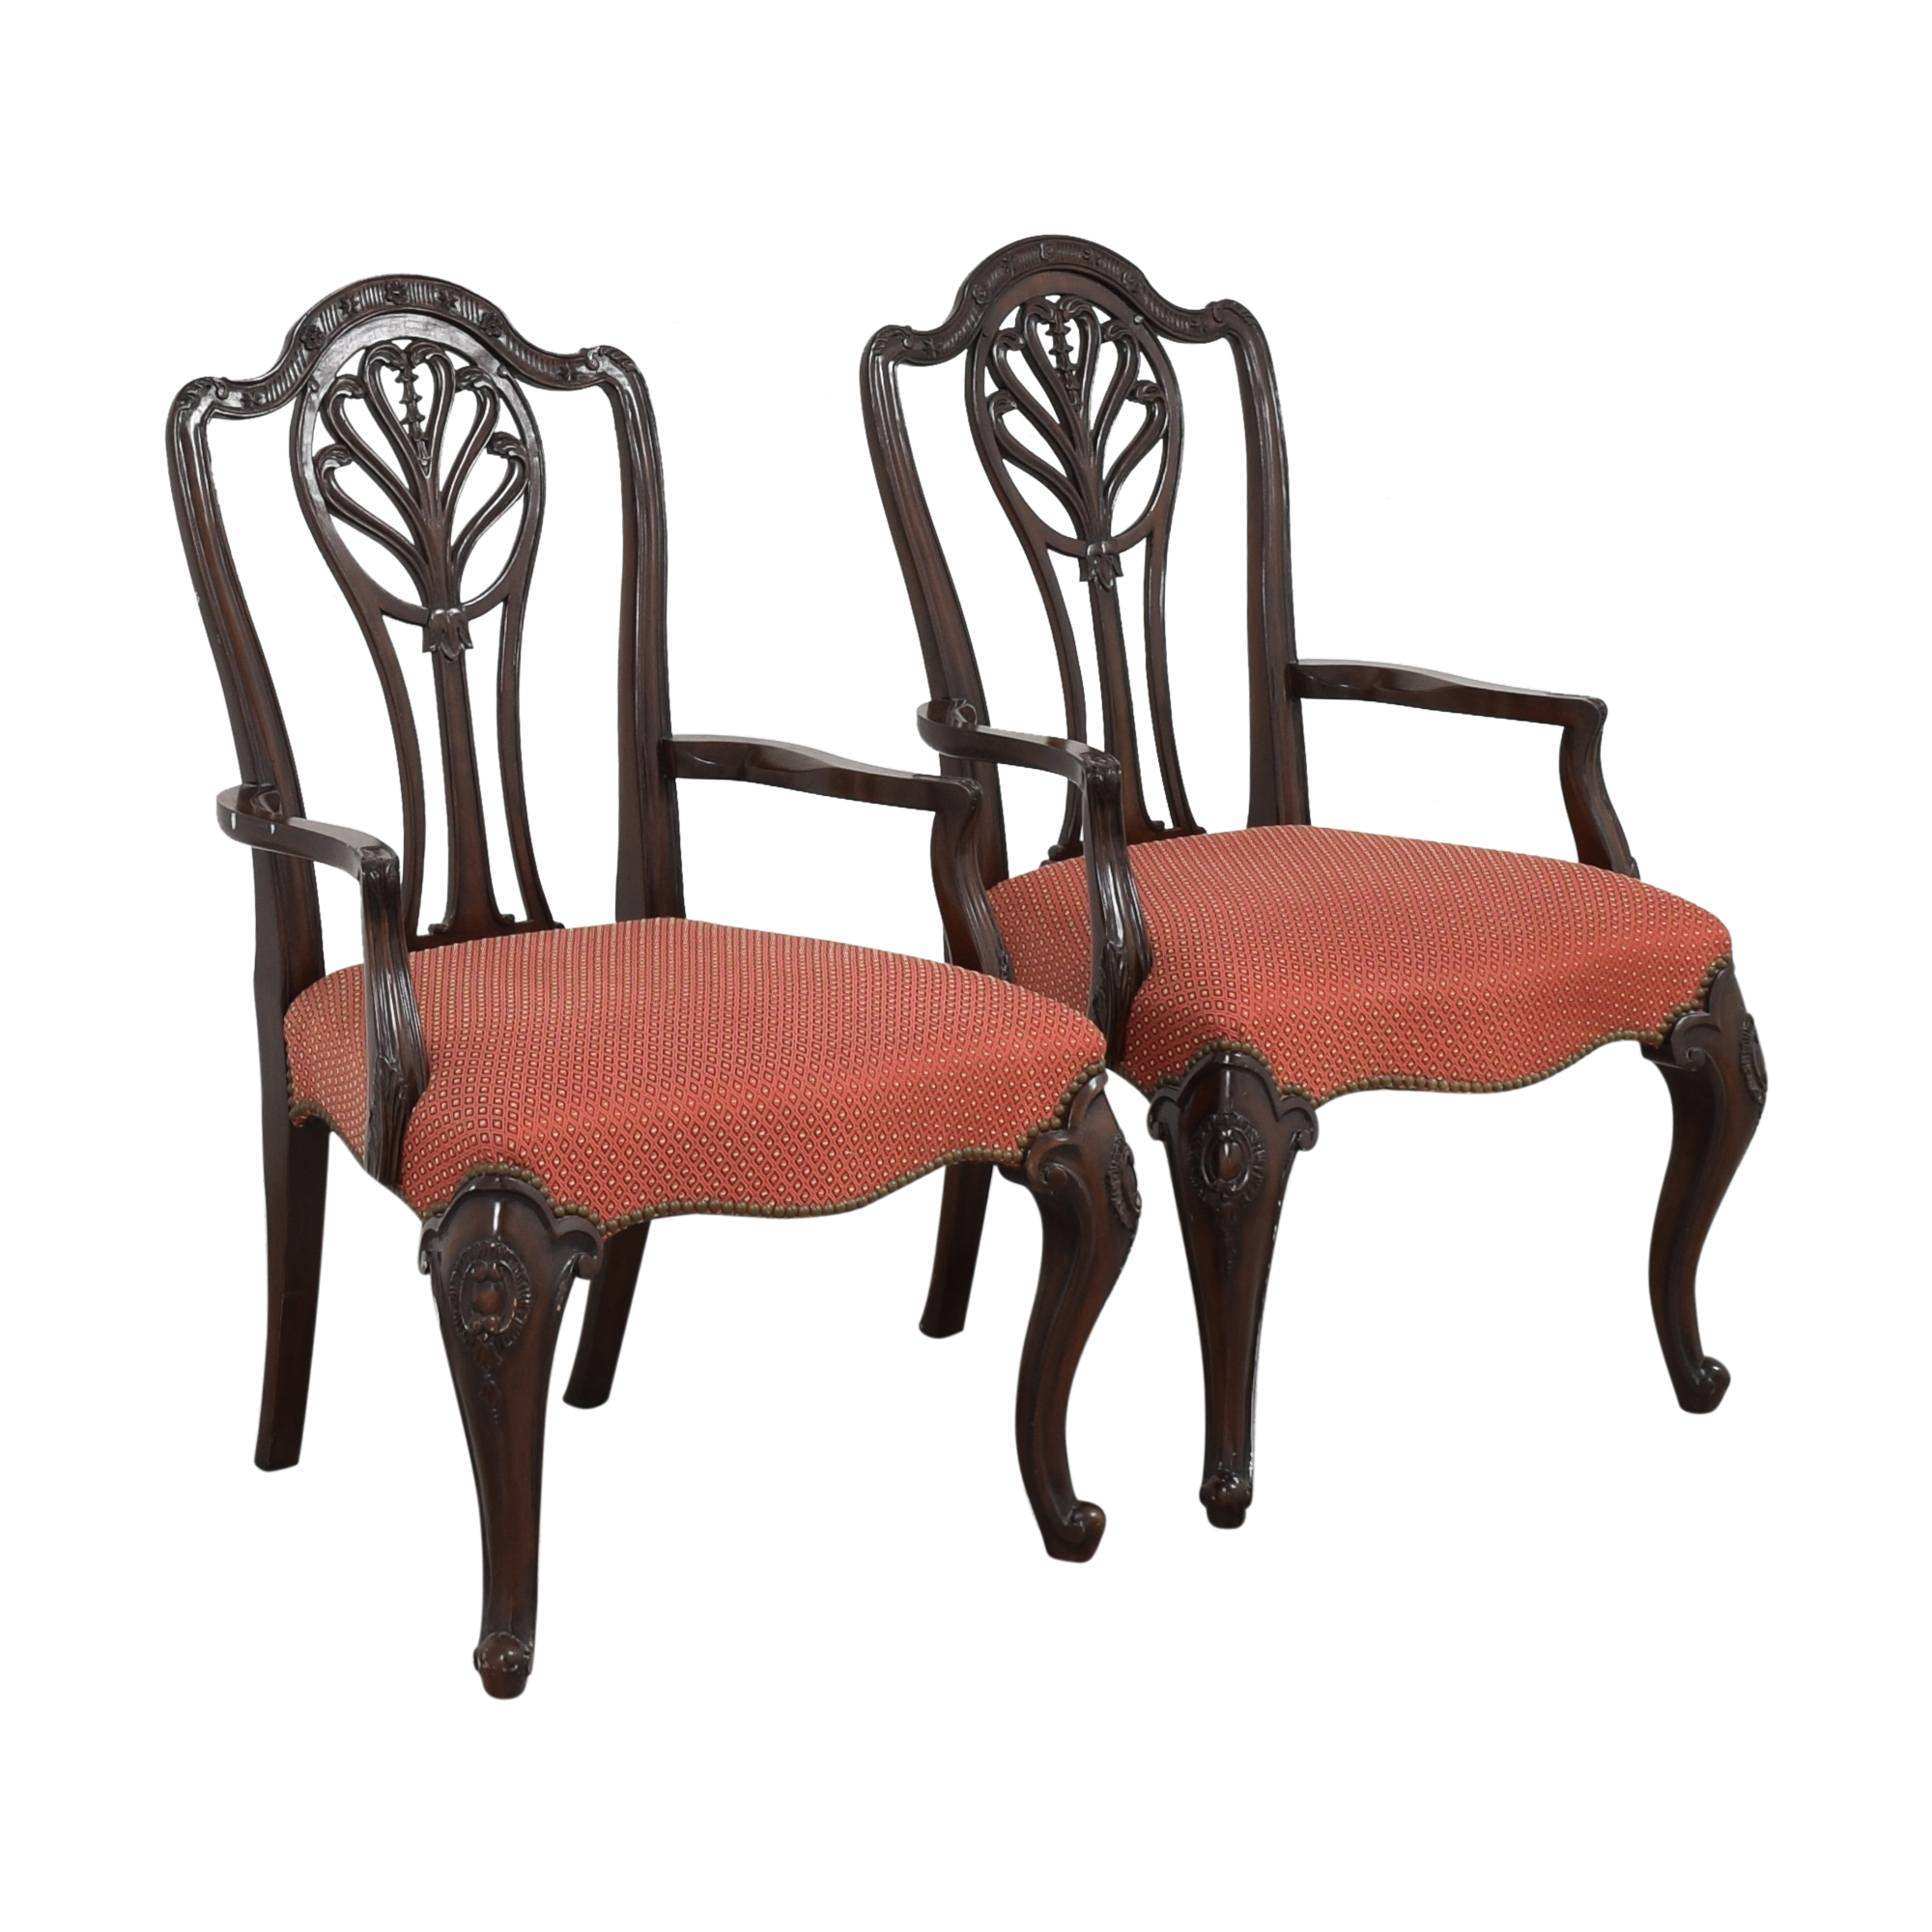 shop Drexel Heritage Drexel Heritage Upholstered Dining Arm Chairs online